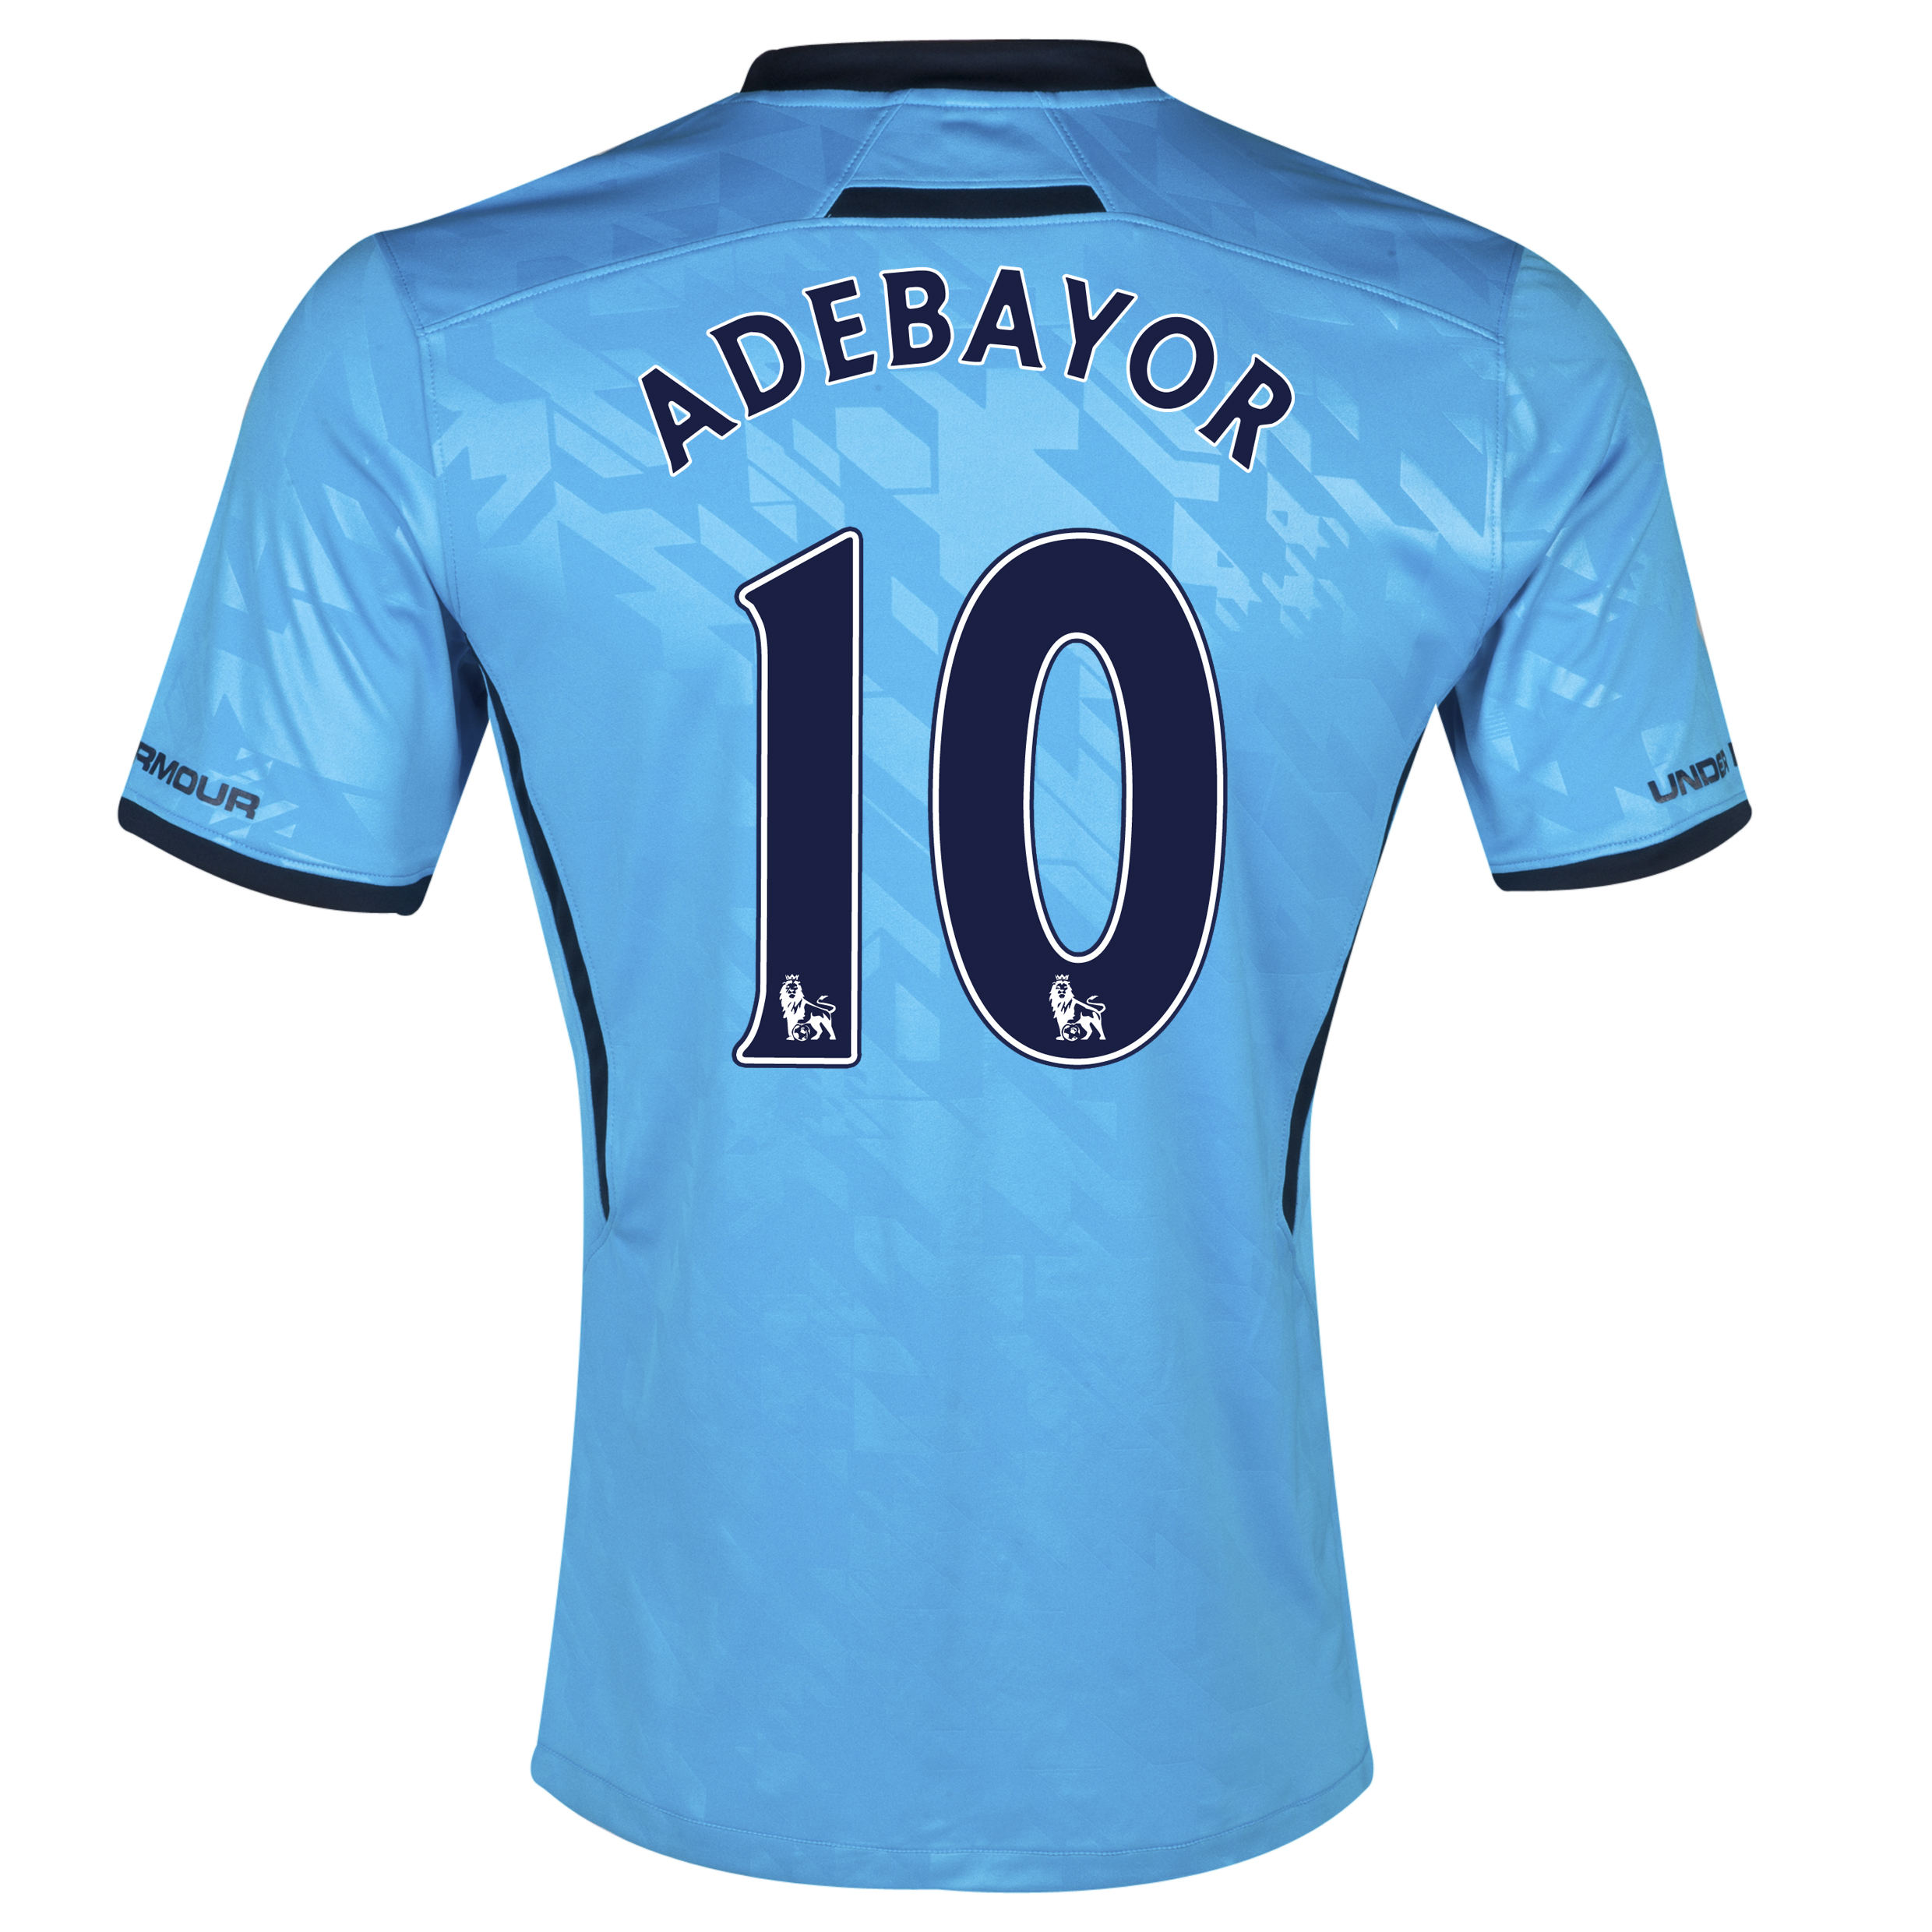 Tottenham Hotspur Away Shirt 2013/14 - Womens with Adebayor 10 printing